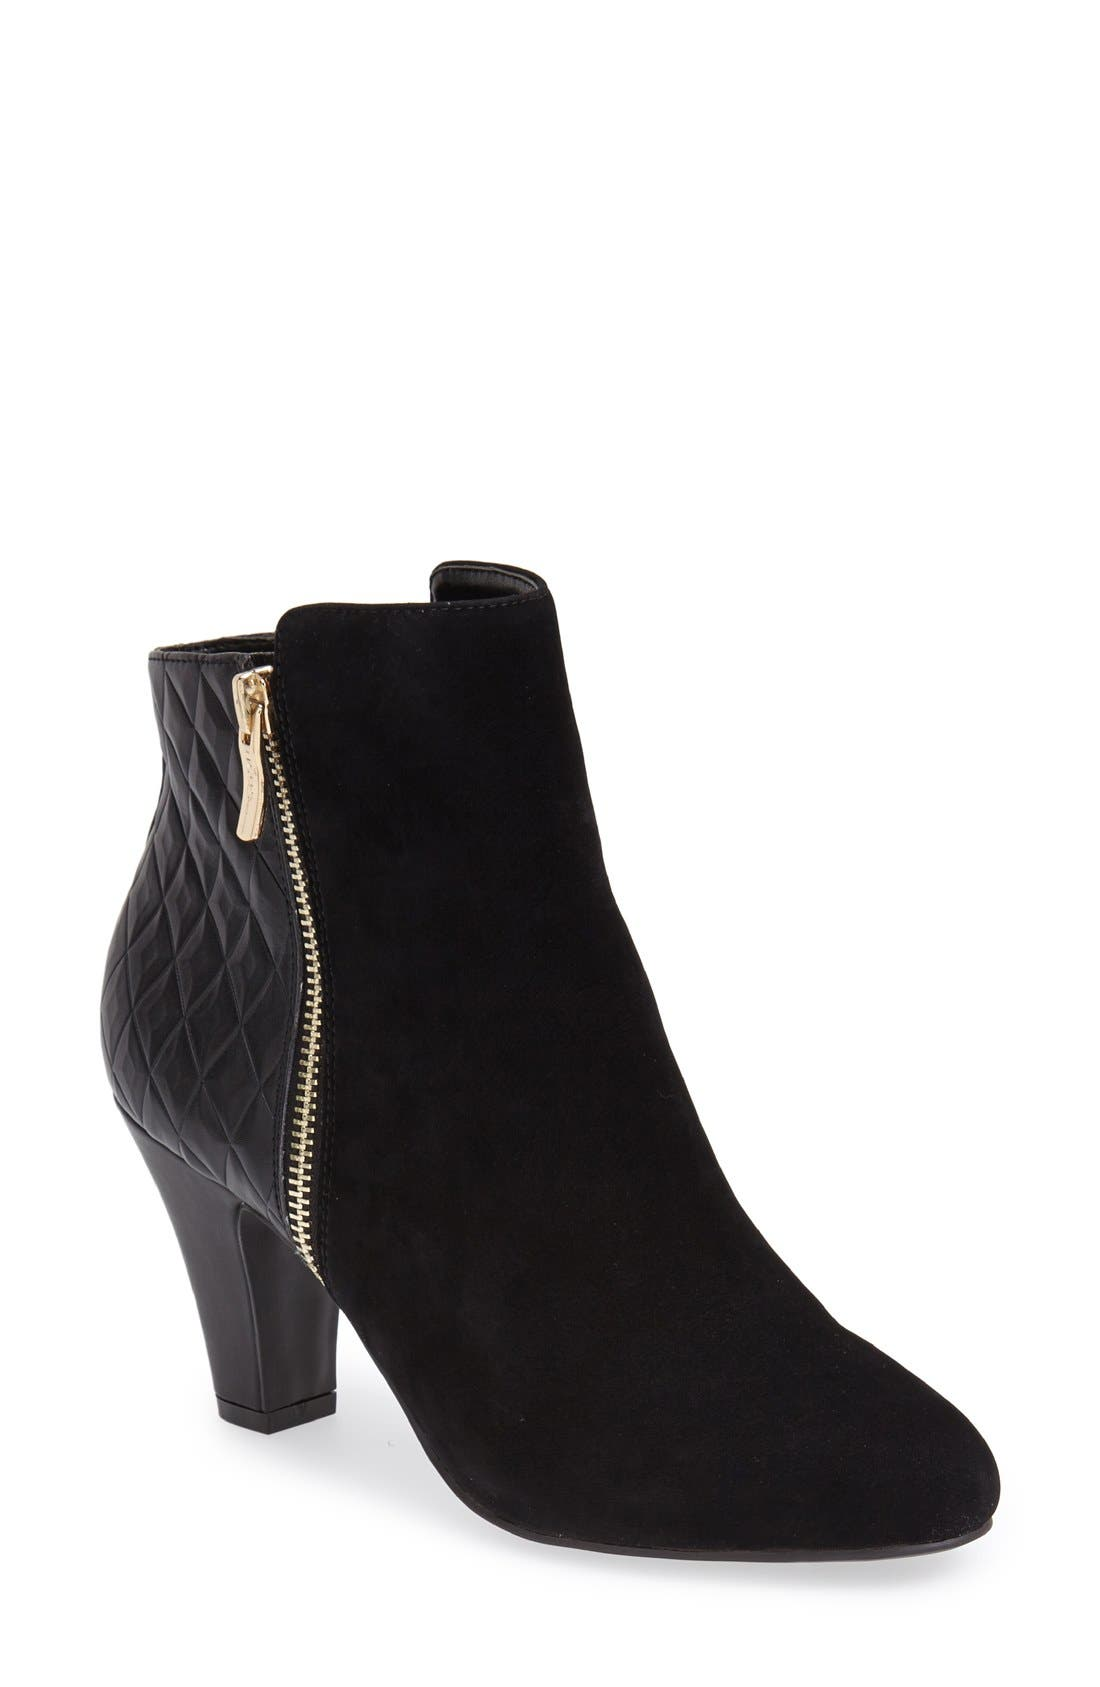 Alternate Image 1 Selected - BCBGeneration 'Dawn' Ankle Bootie (Women)